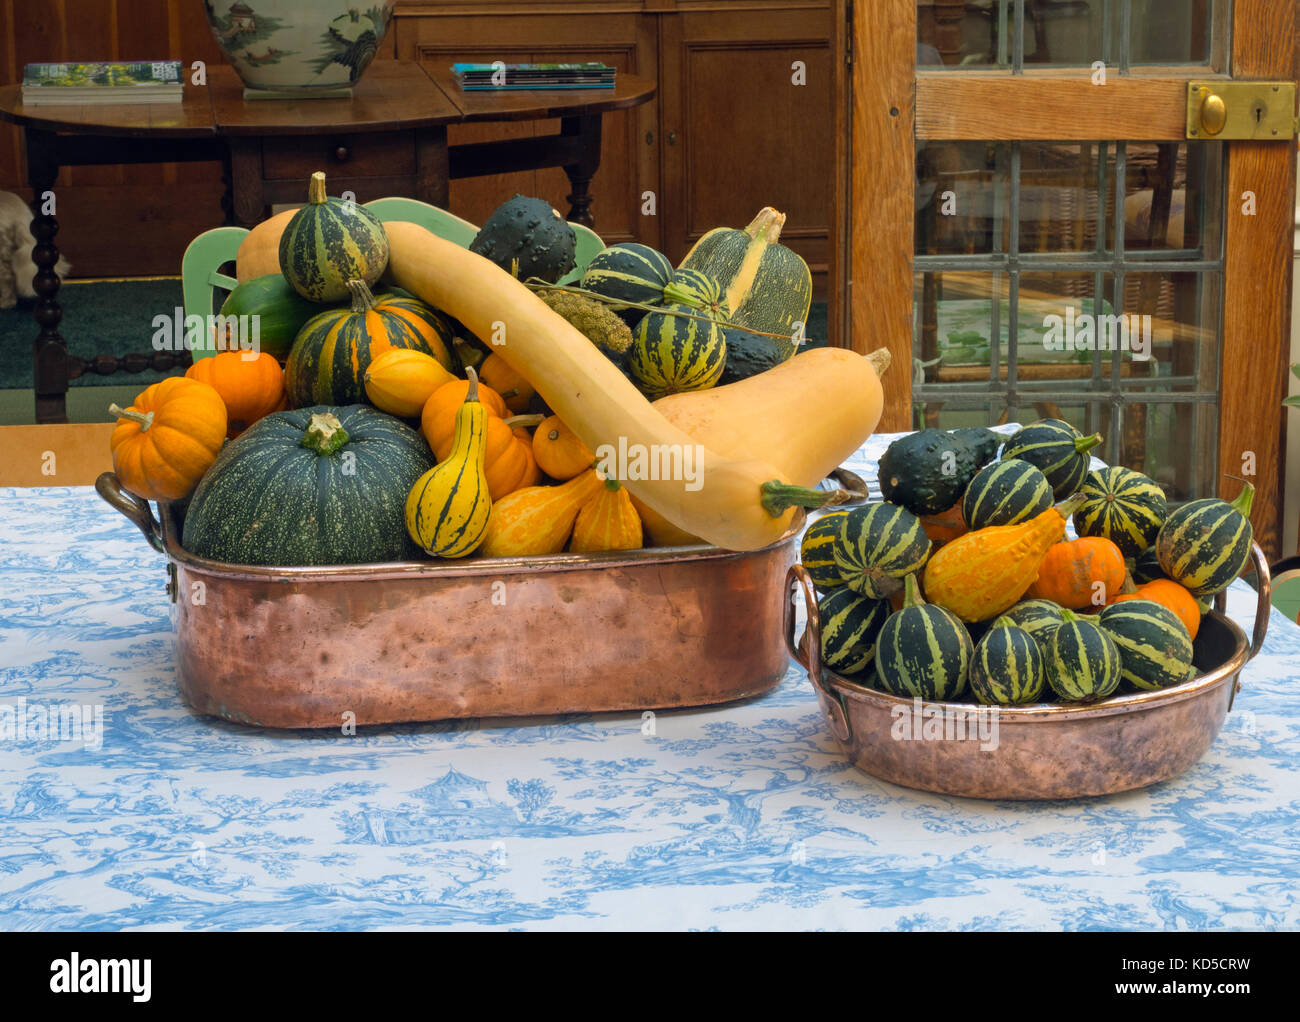 Mixed squashes on display autumn fruits from the garden - Stock Image